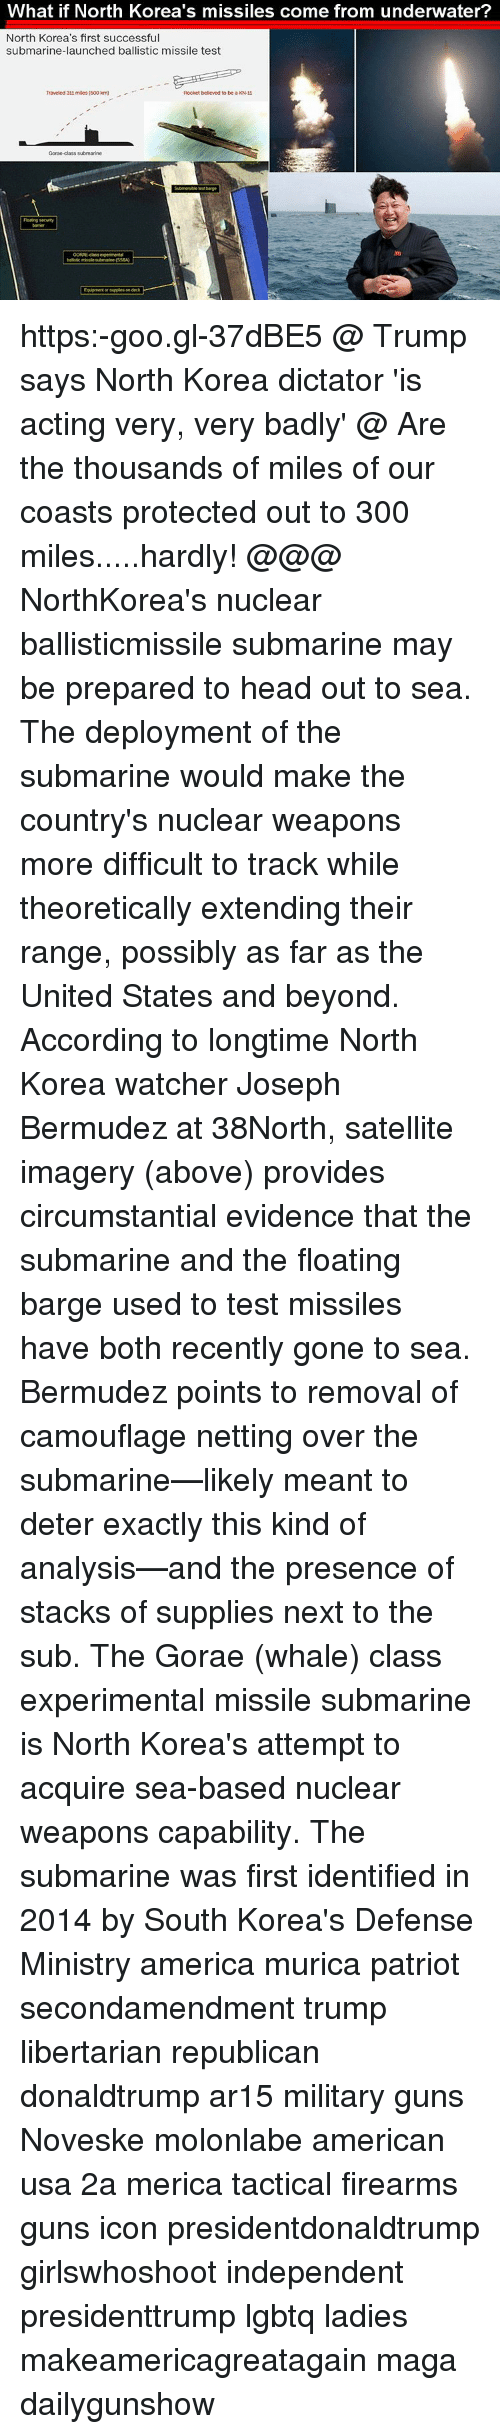 Memes And Usa What If North Korea S Missiles Come From Underwater